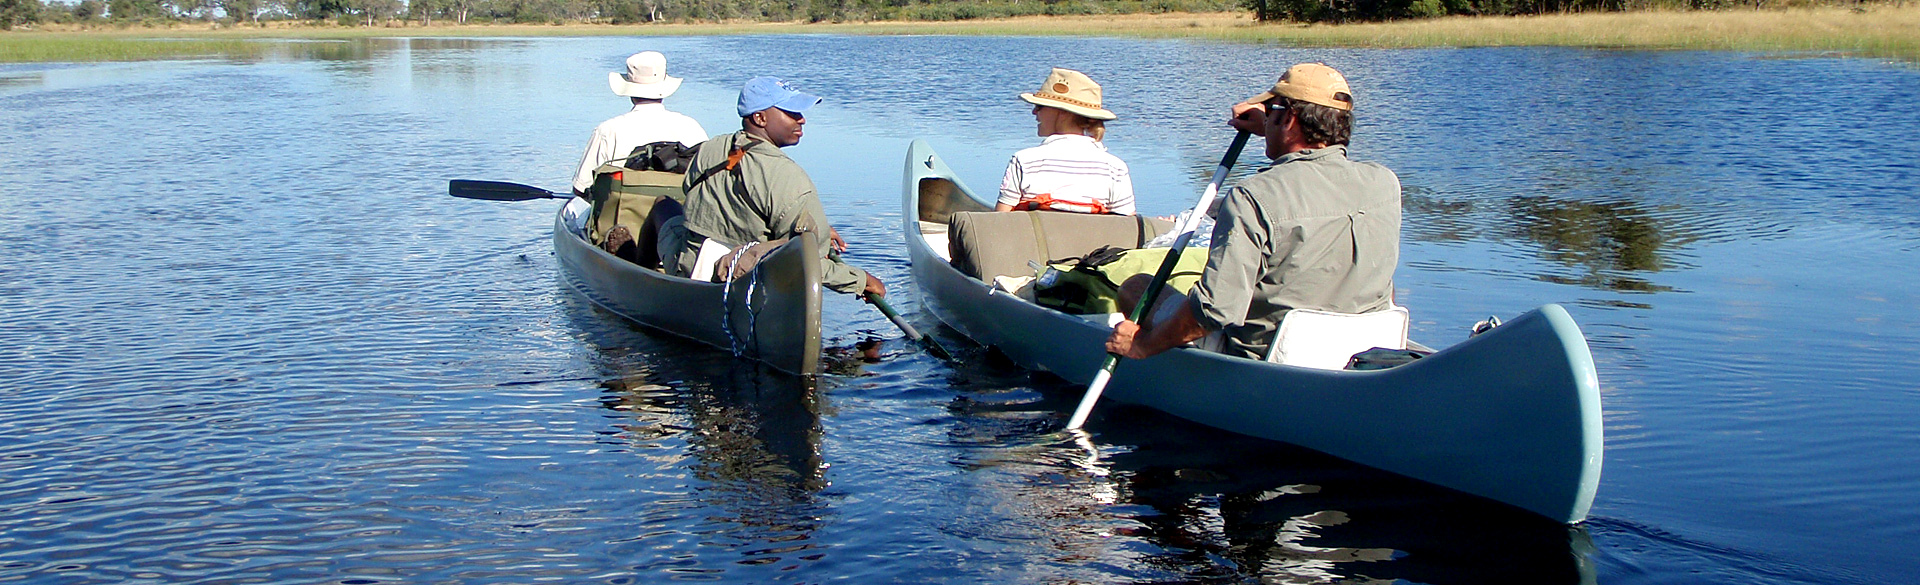 Canoeing the Selinda courtesy Great Plains Conservation